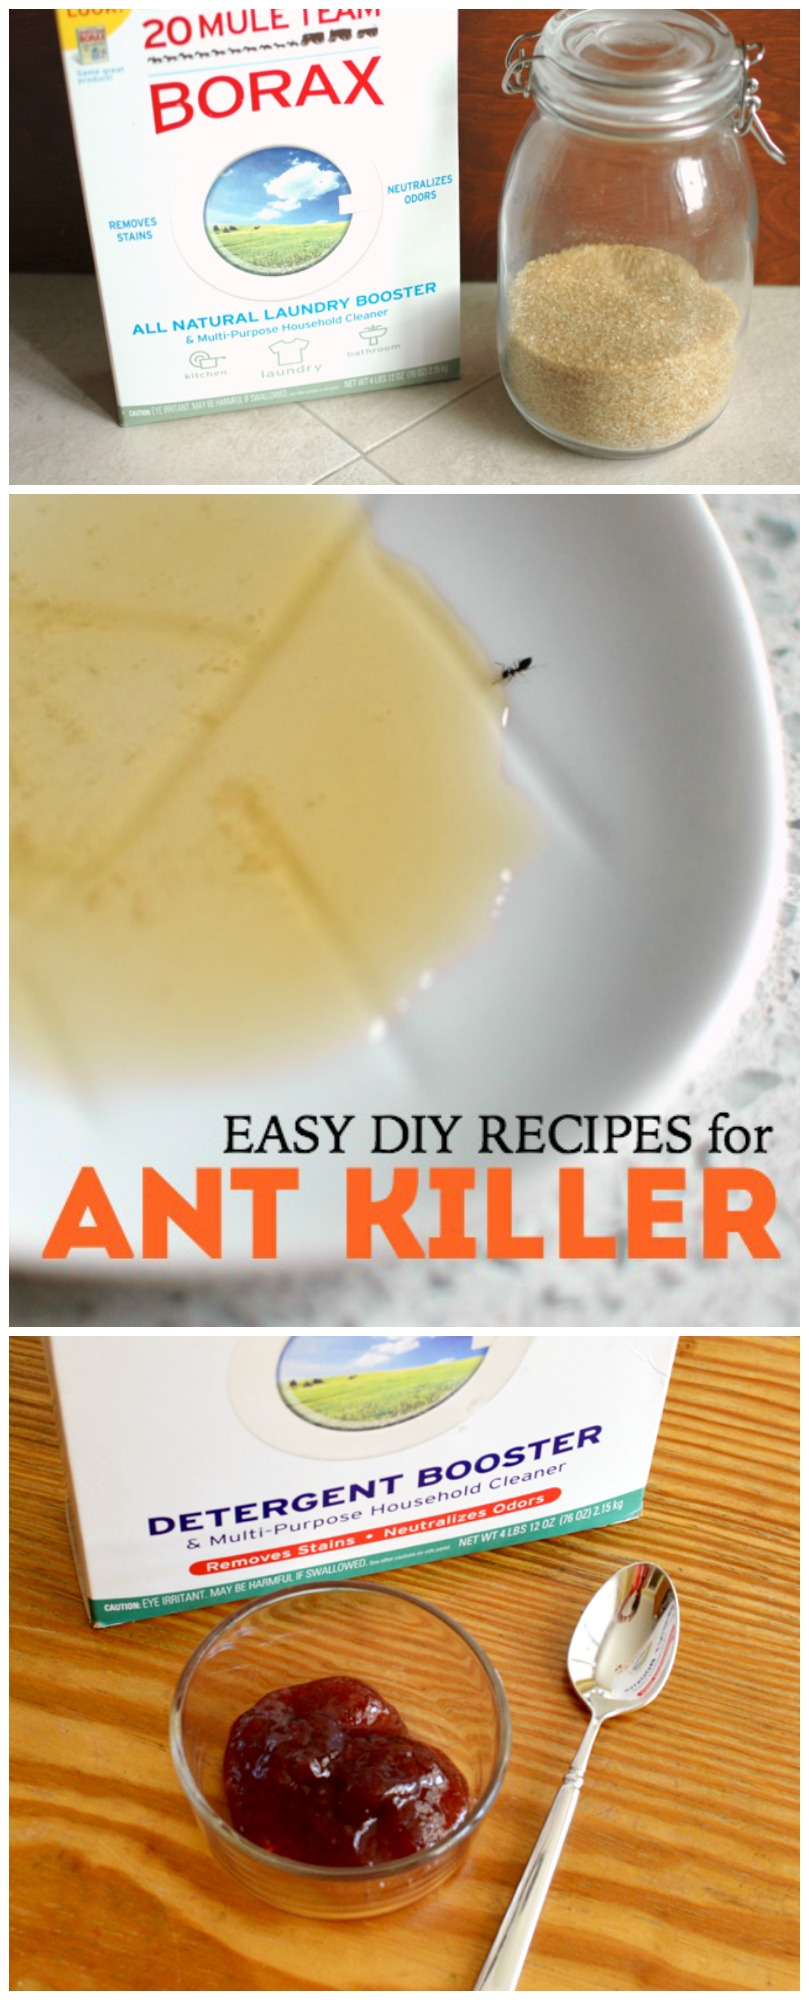 Easy DIY Recipes for Ant Killer